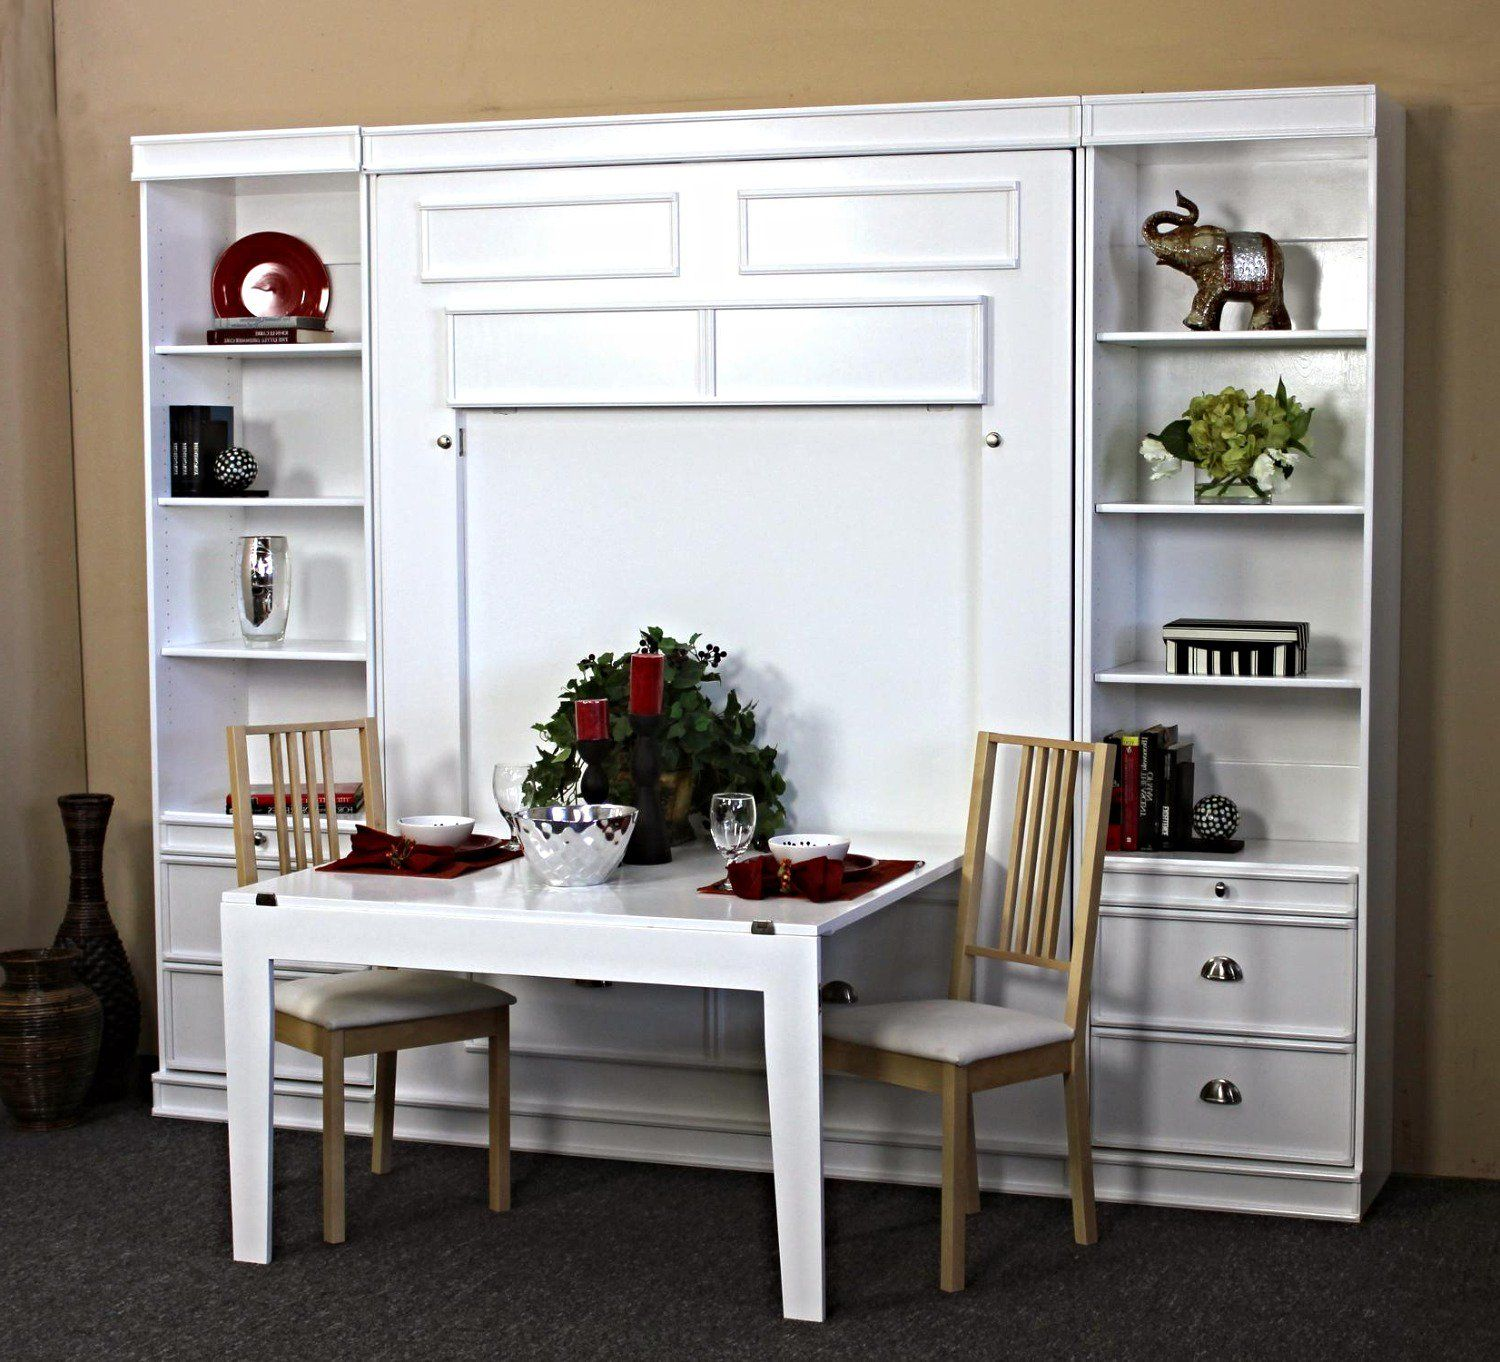 bristol birch vertical wall bed w table by wallbeds on wall beds id=33176